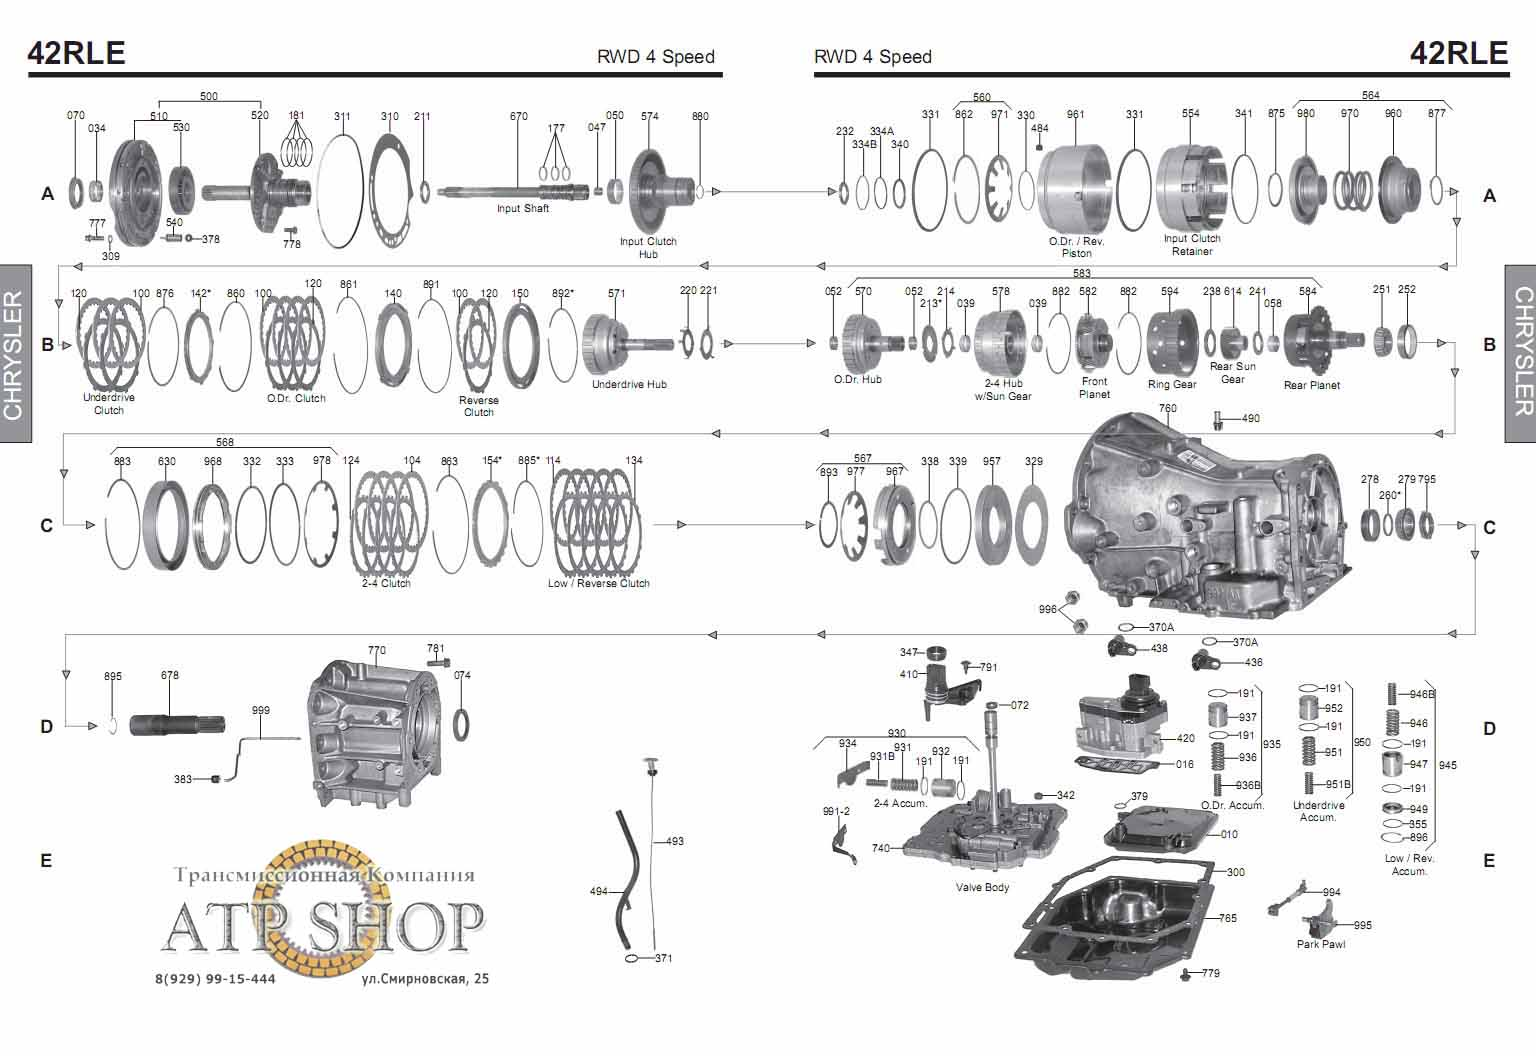 TM 5 6115 590 12 29 additionally 2il0k 10 Pickup Test Wiper Motor Circut 1995 S Wiring Diagram as well High Voltage Schematic Symbols moreover Viewtopic in addition C11. on dodge wiring schematics